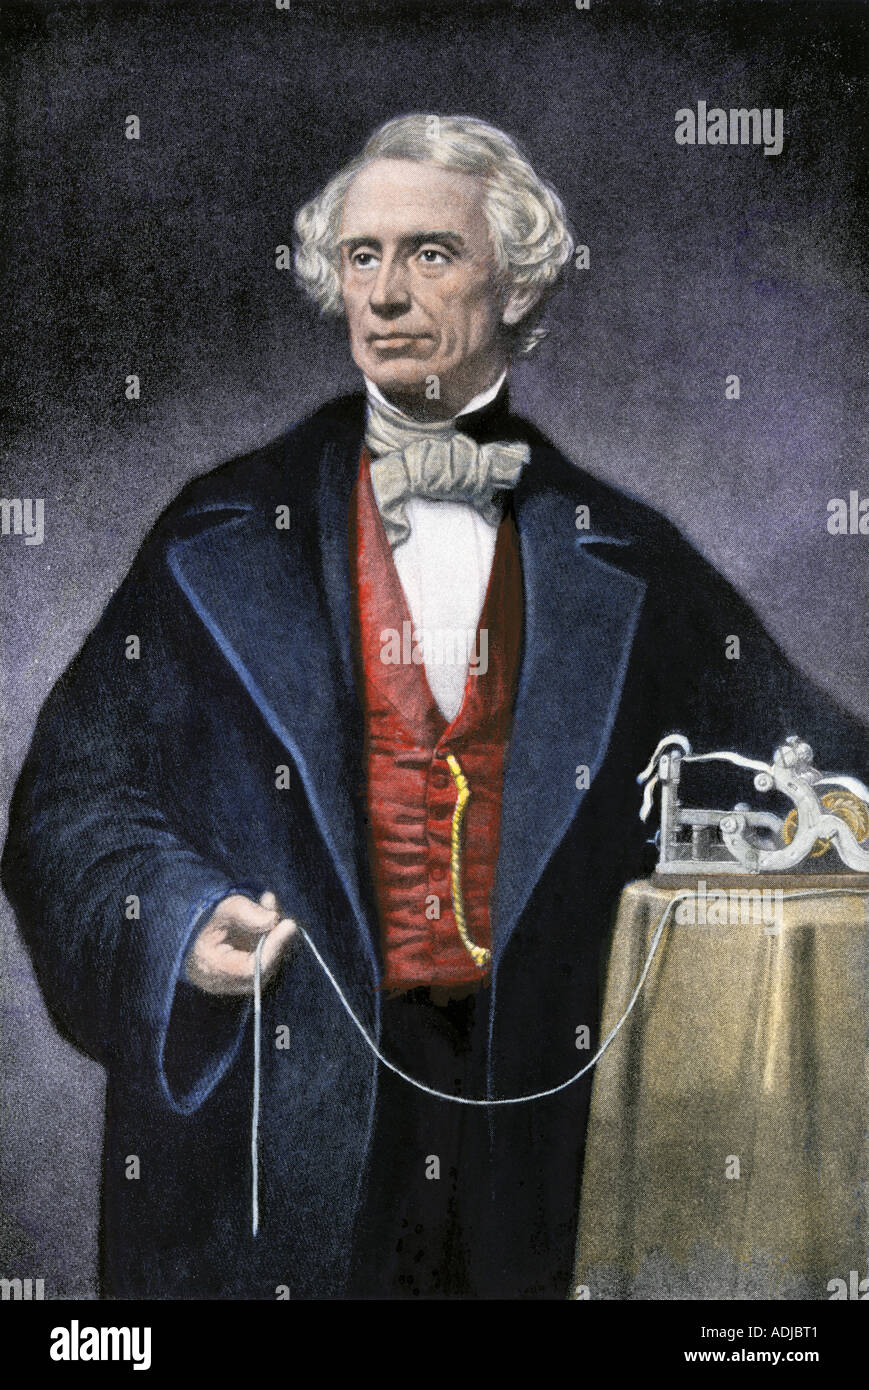 Samuel Morse with his invention the telegraph - Stock Image